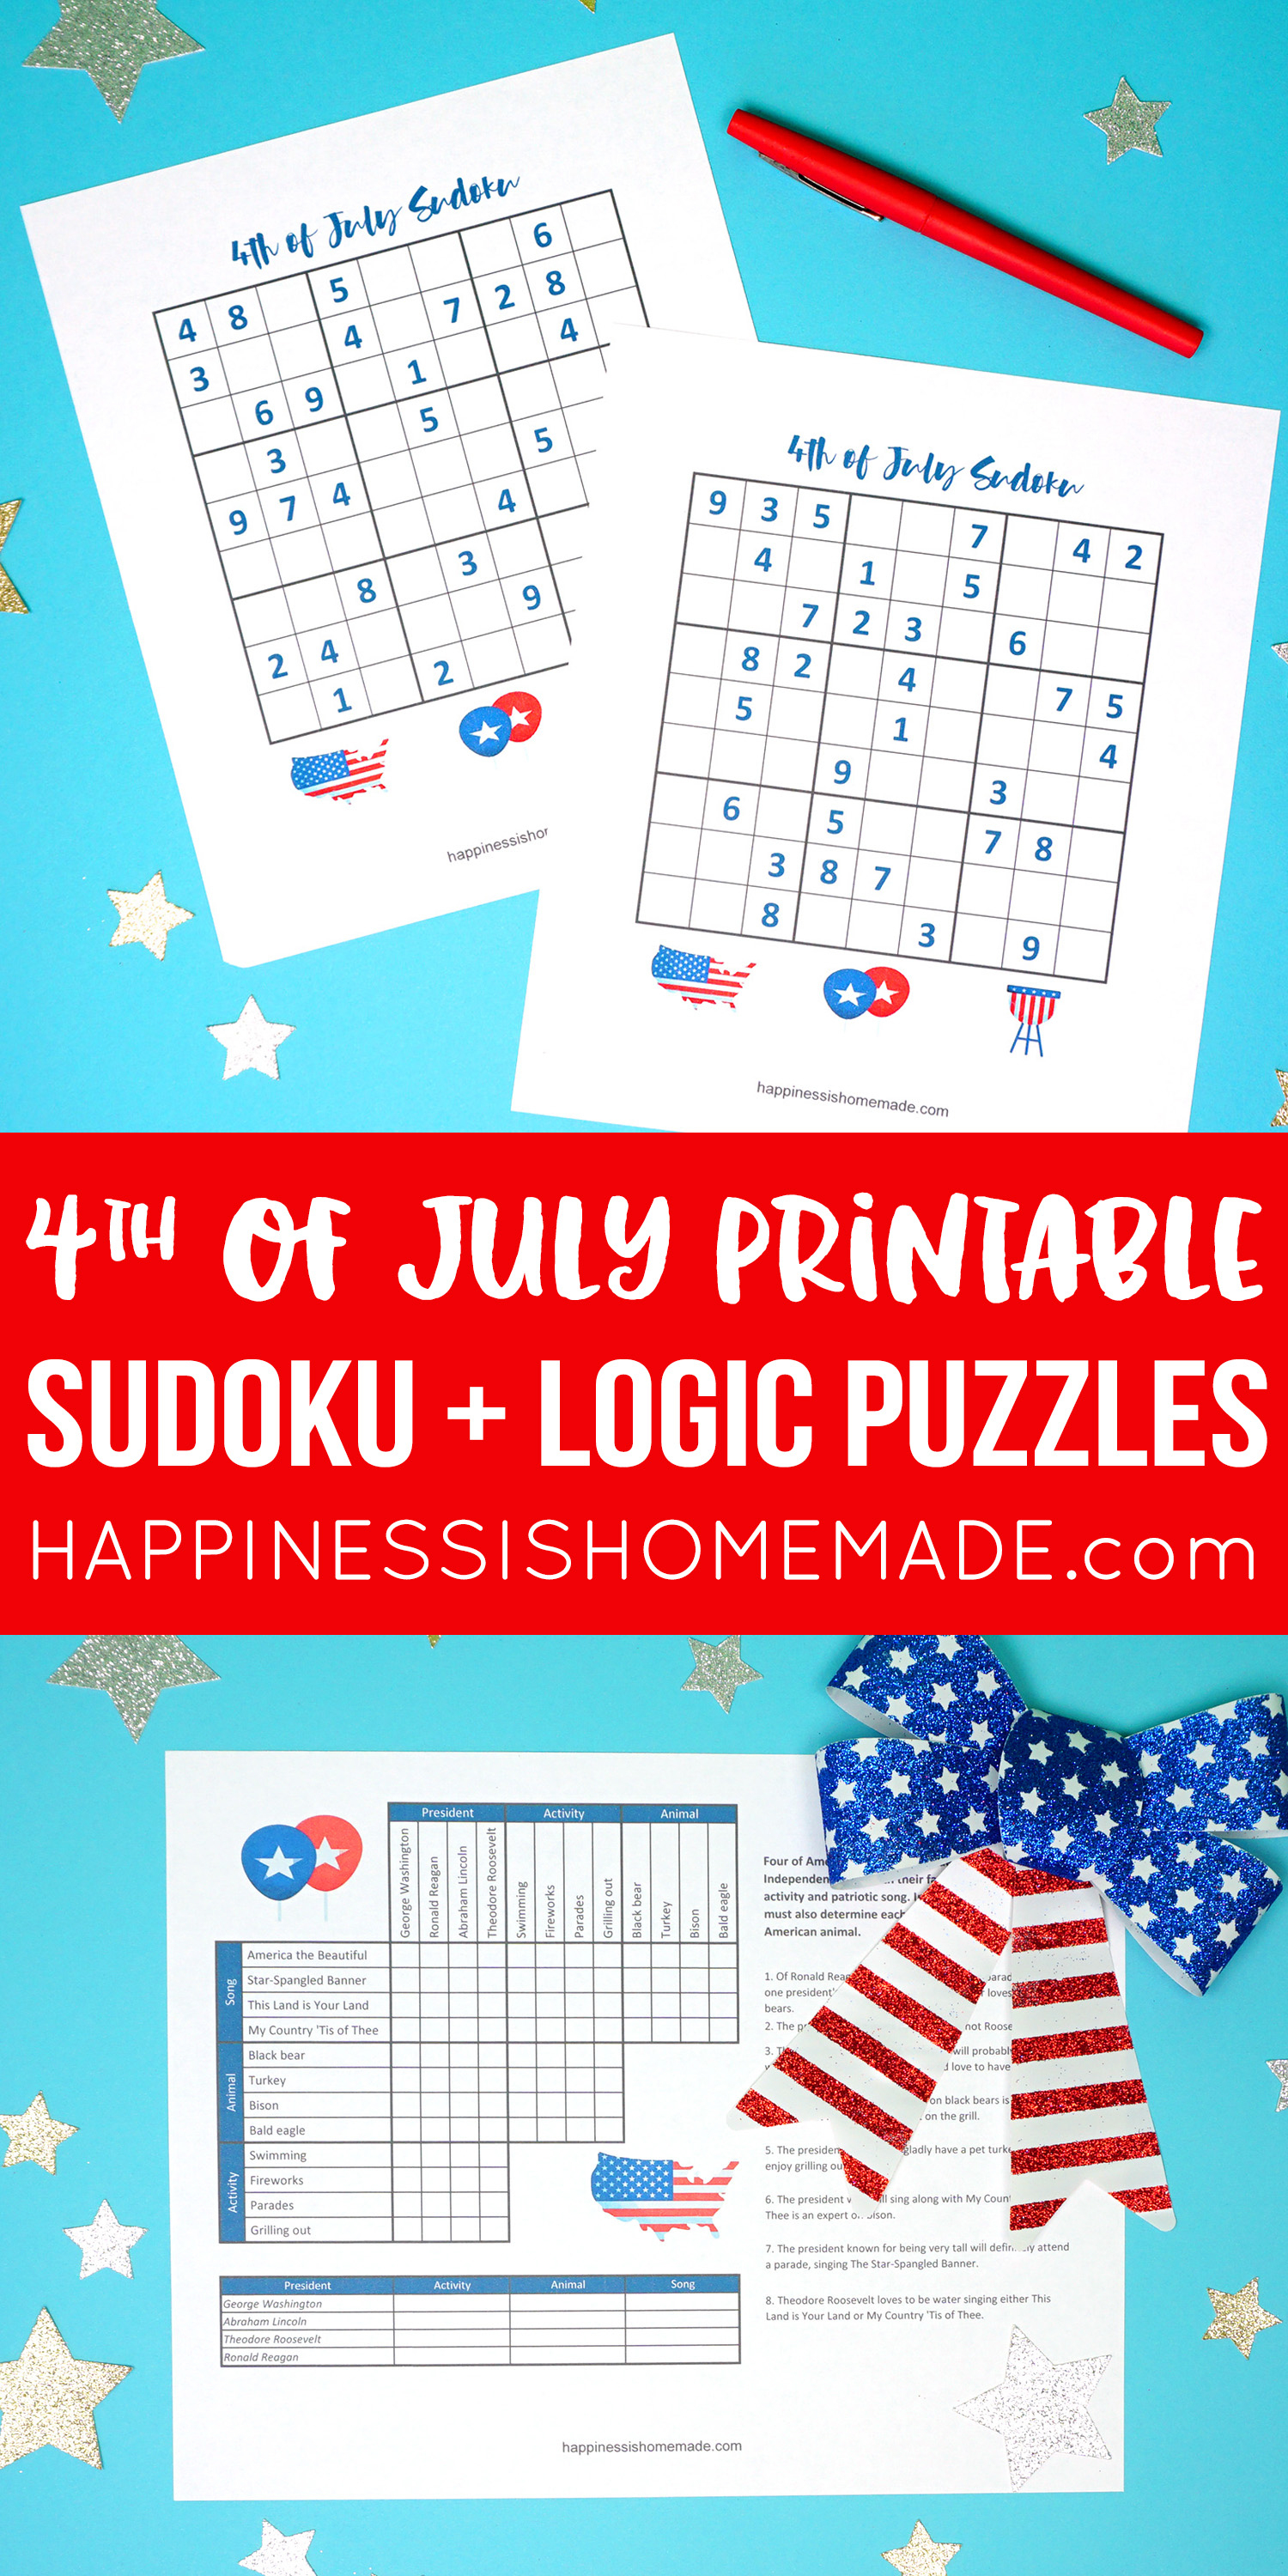 4Th Of July Word Search Printable - Happiness Is Homemade - Printable Office Puzzles